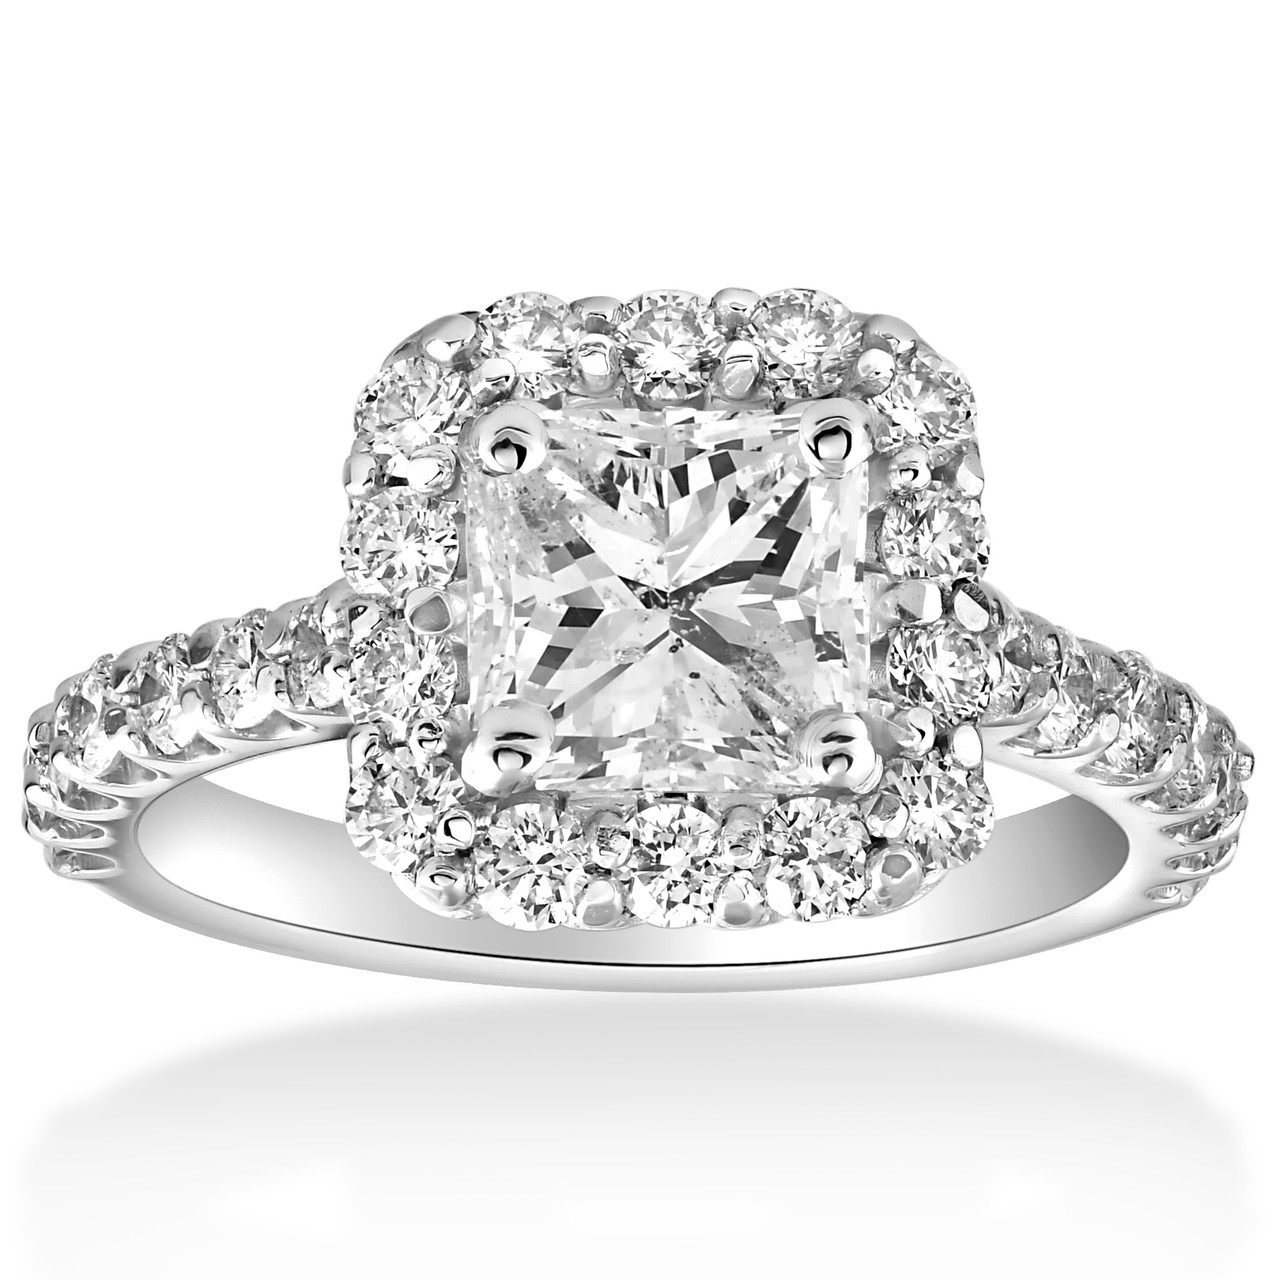 2 Cttw Halo Princess Square Cut Diamond Engagement Ring 14k White Gold